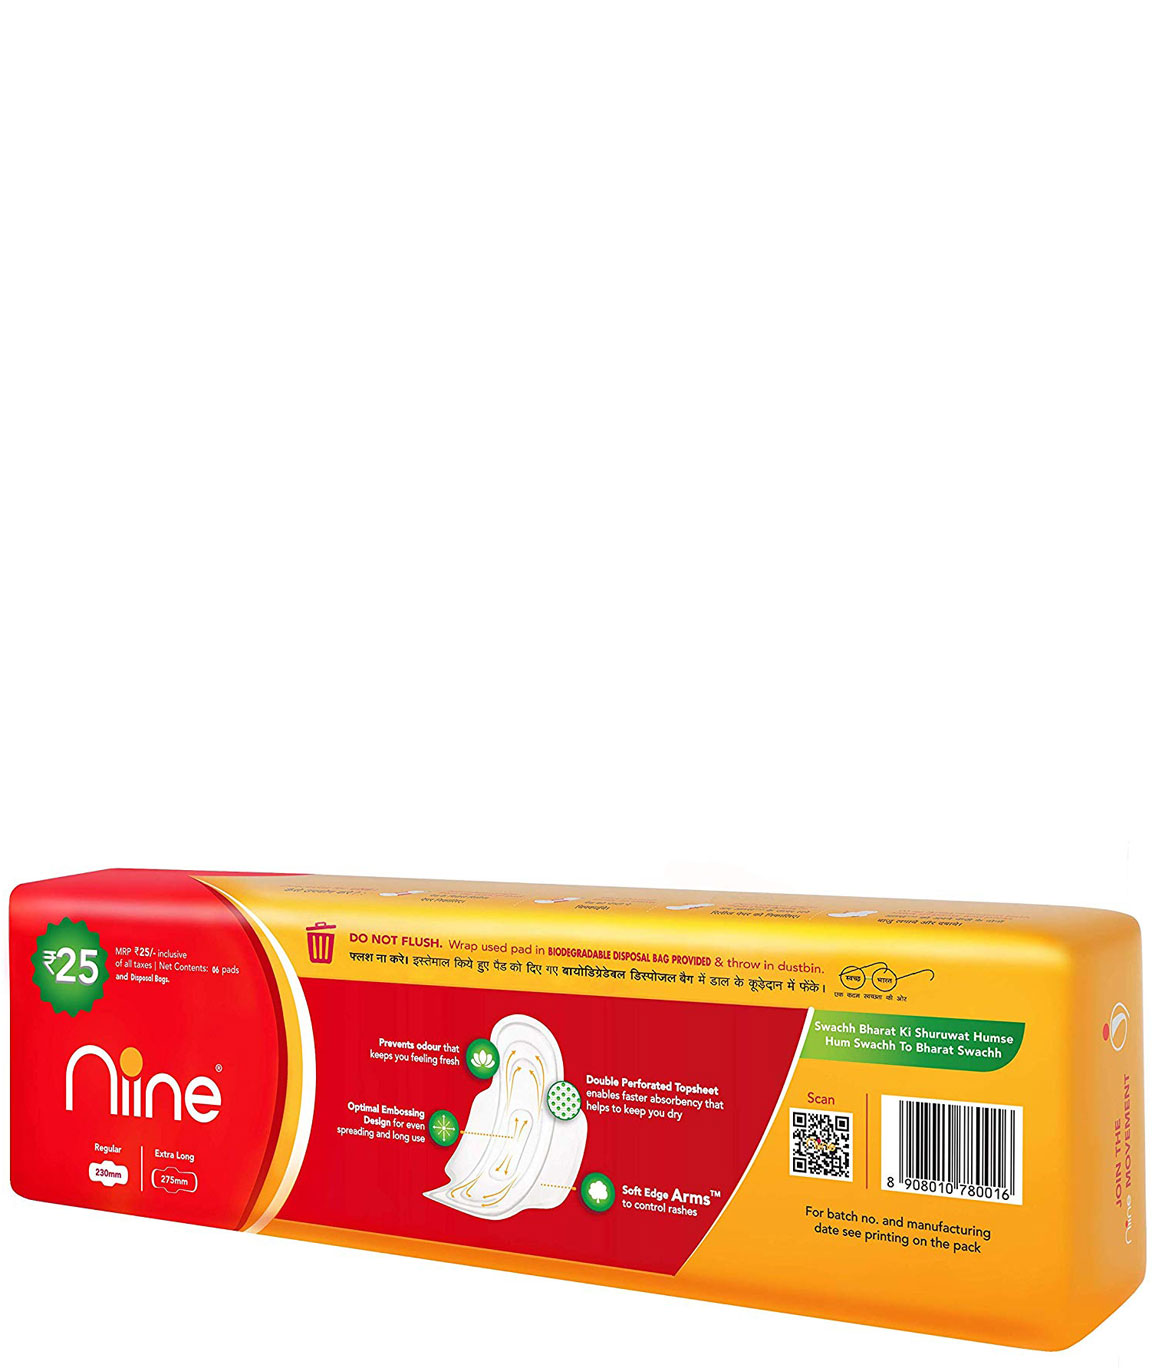 Nine Regular 6 Sanitary Pads With Disposable Bags for Women (Pack of 10)